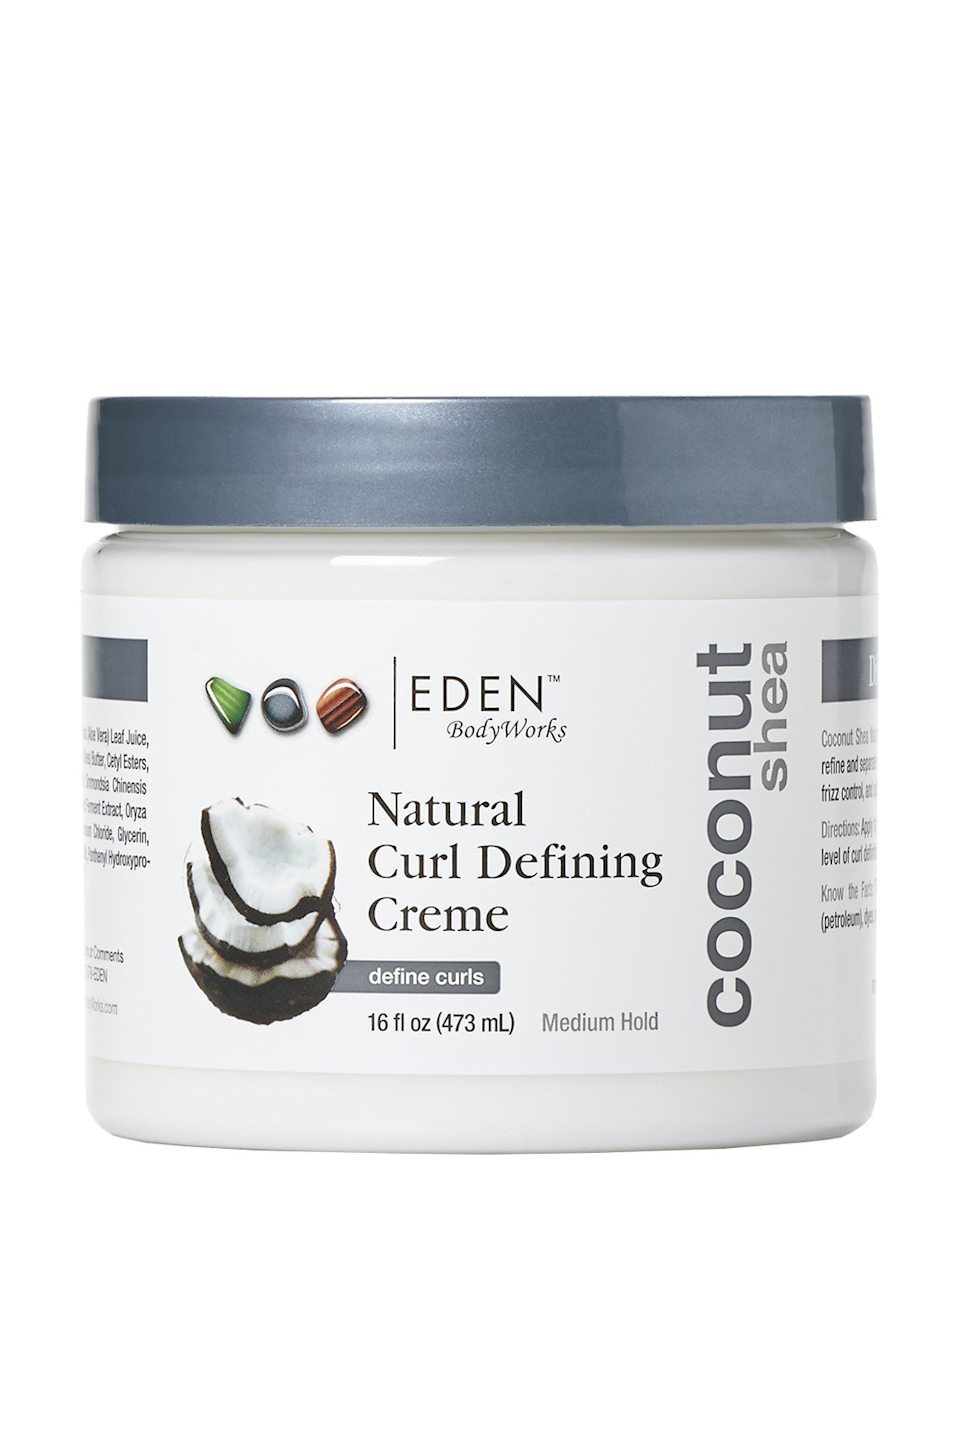 """<p><strong>EDEN BodyWorks</strong></p><p>amazon.com</p><p><strong>$14.14</strong></p><p><a href=""""https://www.amazon.com/dp/B00IYTKTAK?tag=syn-yahoo-20&ascsubtag=%5Bartid%7C10049.g.35265911%5Bsrc%7Cyahoo-us"""" rel=""""nofollow noopener"""" target=""""_blank"""" data-ylk=""""slk:Shop Now"""" class=""""link rapid-noclick-resp"""">Shop Now</a></p><p>A hydrating curl cream is a nonnegotiable for 4a hair, and this one from Eden BodyWorks is formulated with <a href=""""https://www.cosmopolitan.com/style-beauty/beauty/g10297243/coconut-oil-products-for-hair/"""" rel=""""nofollow noopener"""" target=""""_blank"""" data-ylk=""""slk:coconut oil"""" class=""""link rapid-noclick-resp"""">coconut oil</a>, shea butter, aloe, and avocado oil—all of which <strong>help moisturize and define your coils without weighing them down</strong>. After cleansing and conditioning, finger-rake a quarter-sized dollop through wet hair until your head is completely saturated (<em>psst—</em>that includes your hairline, ends, and nape of your neck).</p>"""